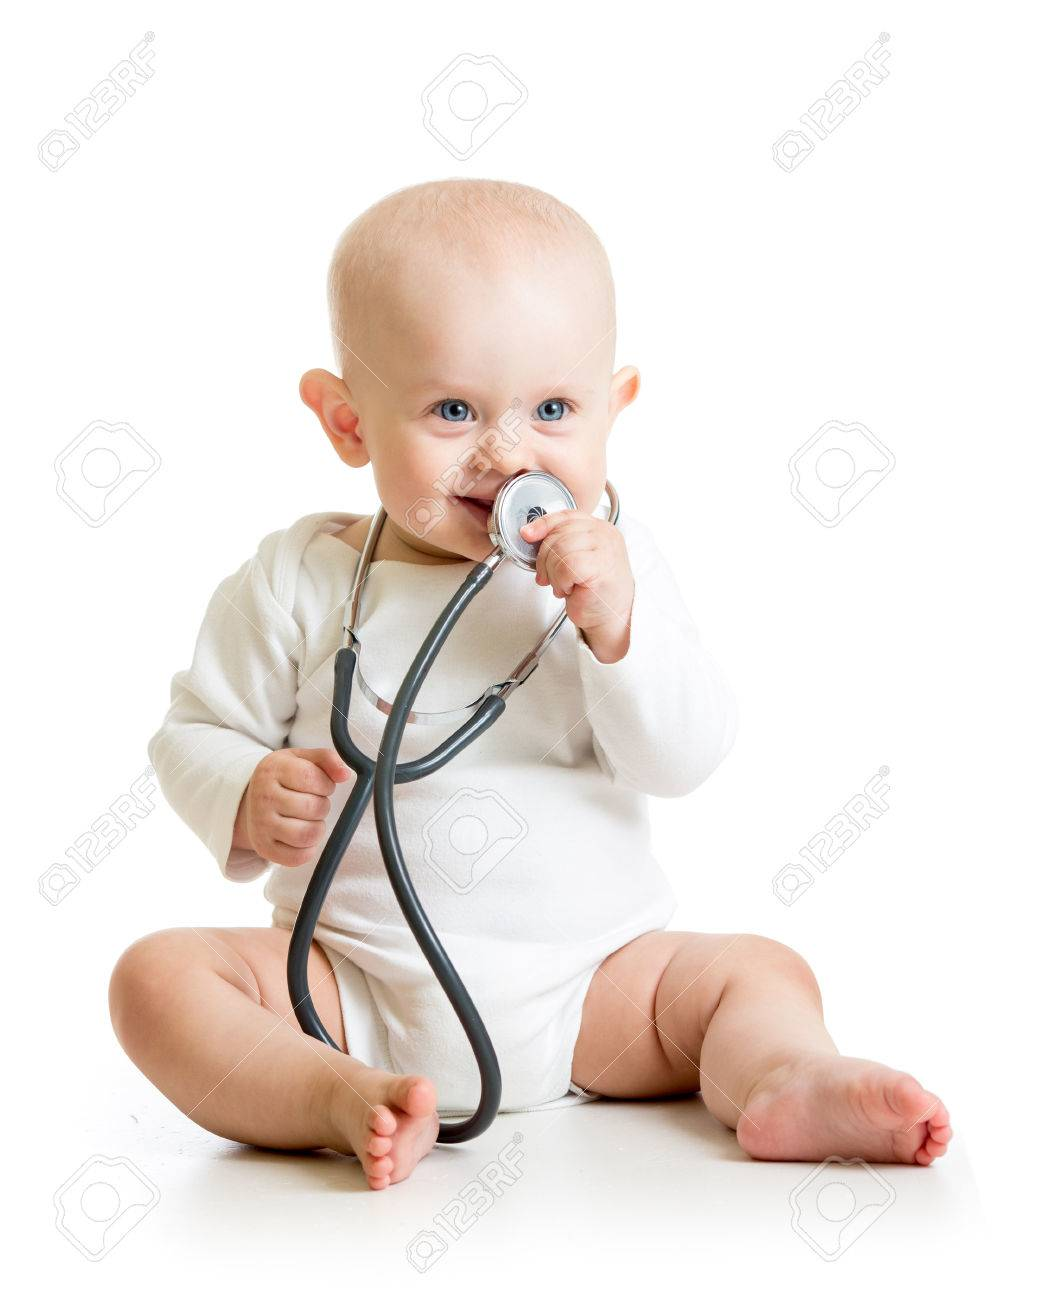 cute baby boy with stethoscope in hands stock photo, picture and